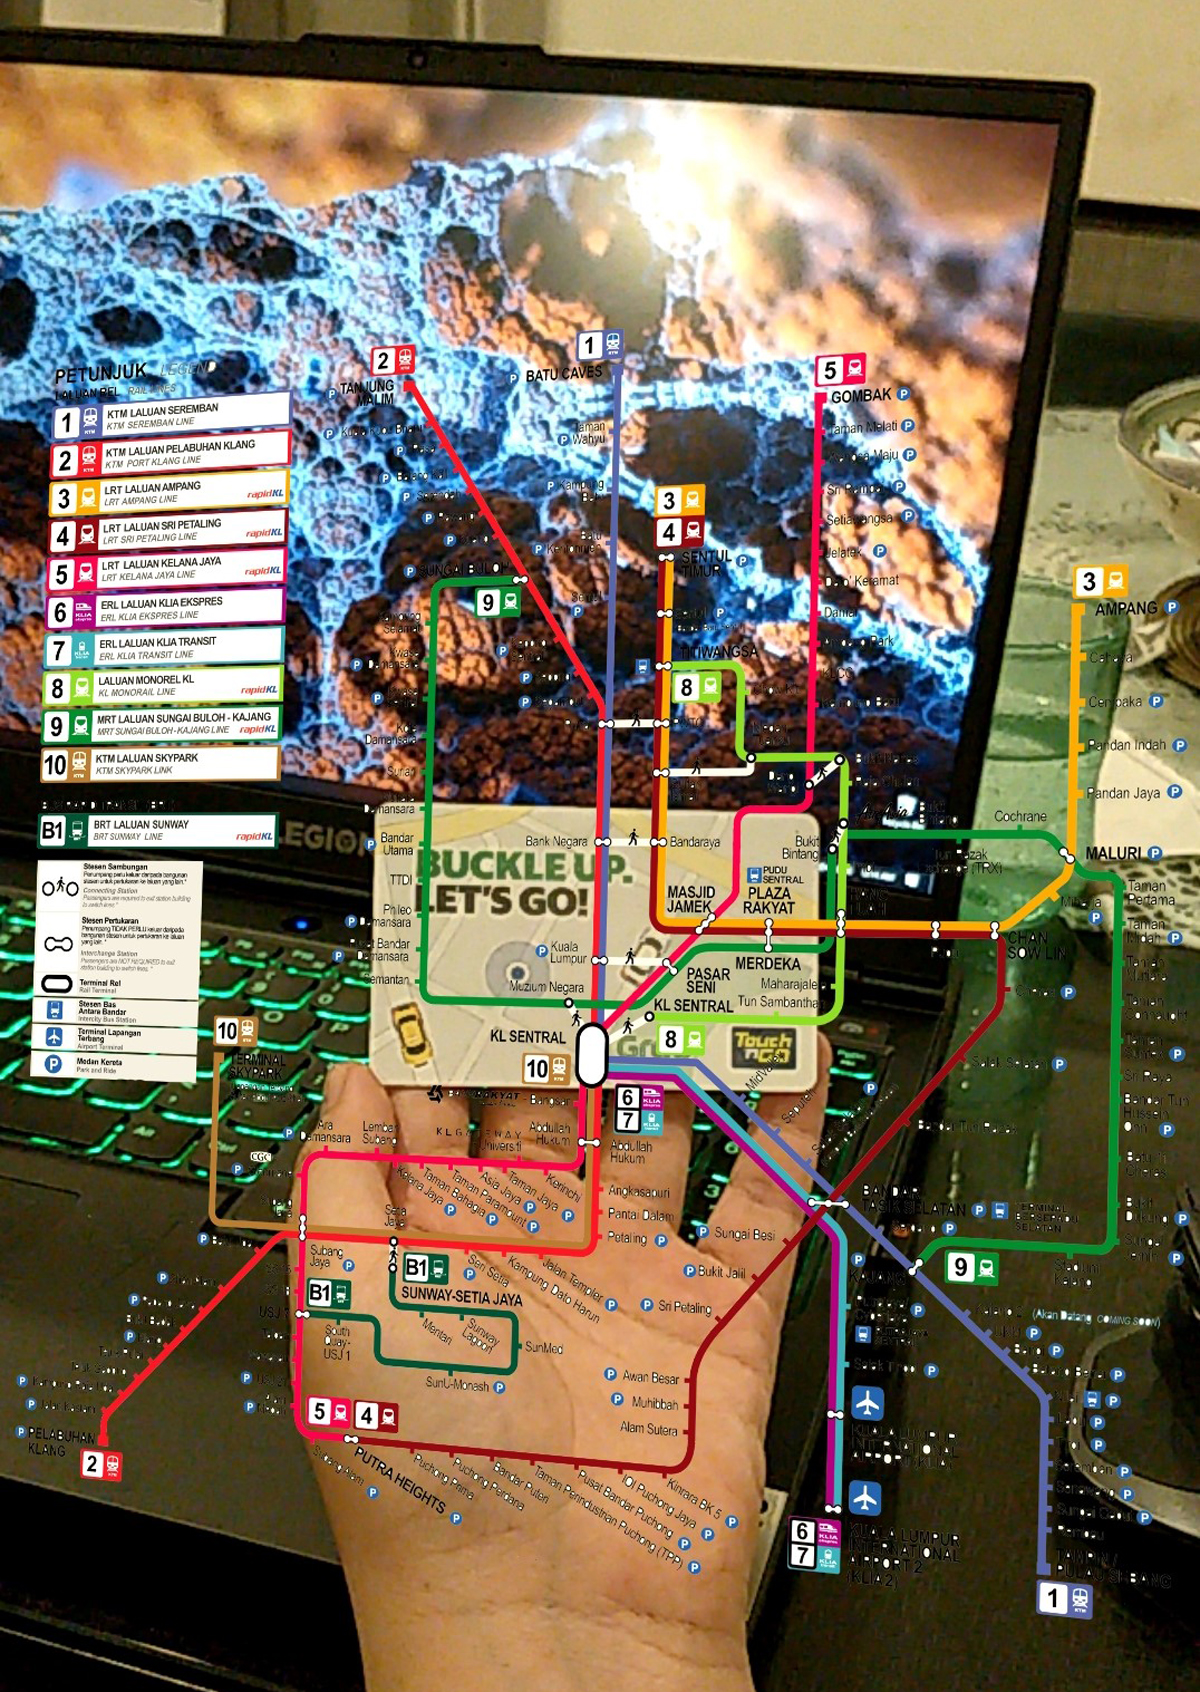 Local Web Developer Creates AR Map For LRT Routes